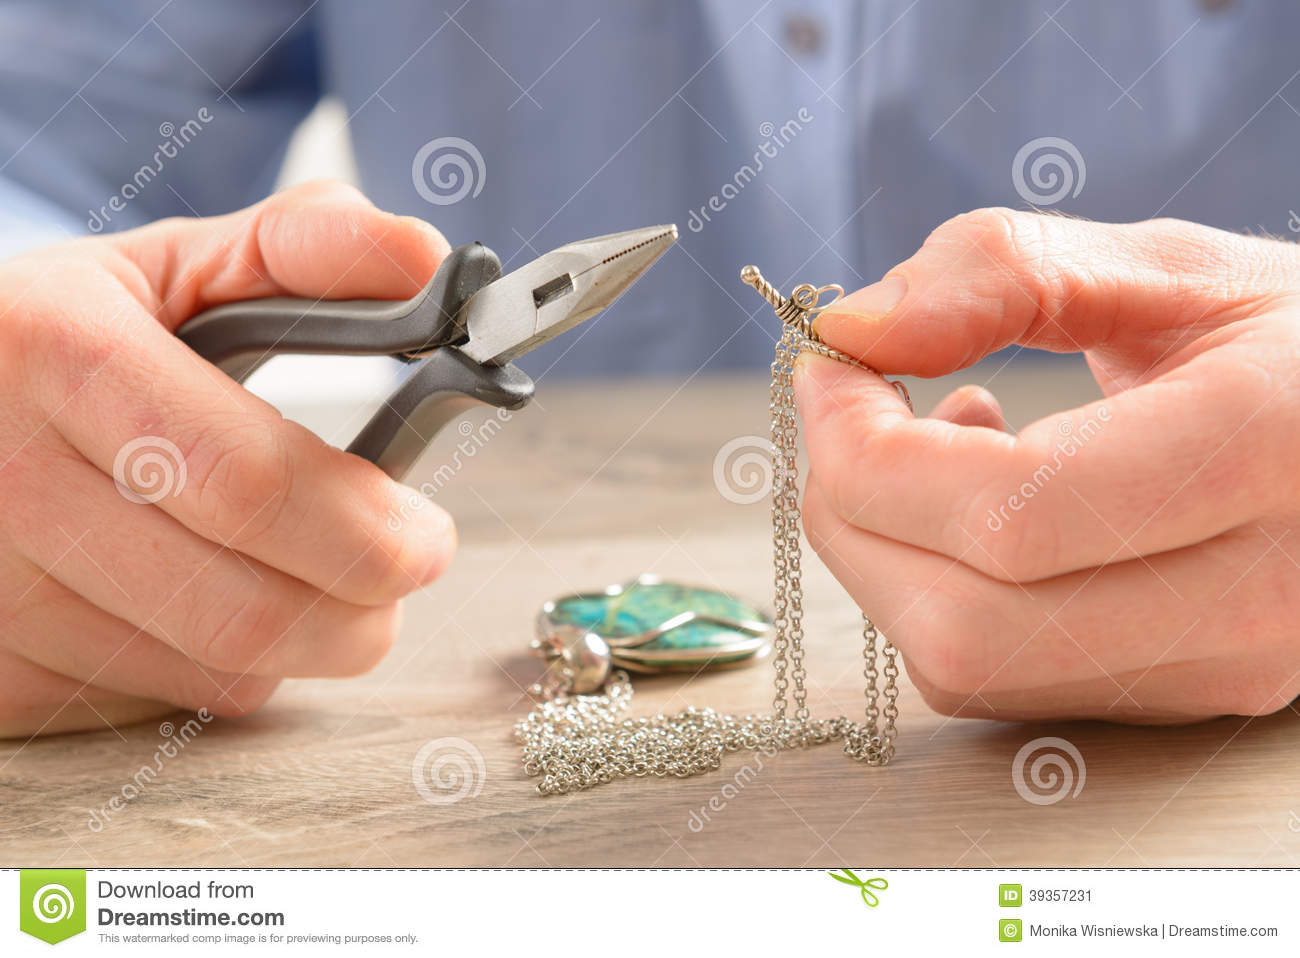 Creating or fixing jewelry